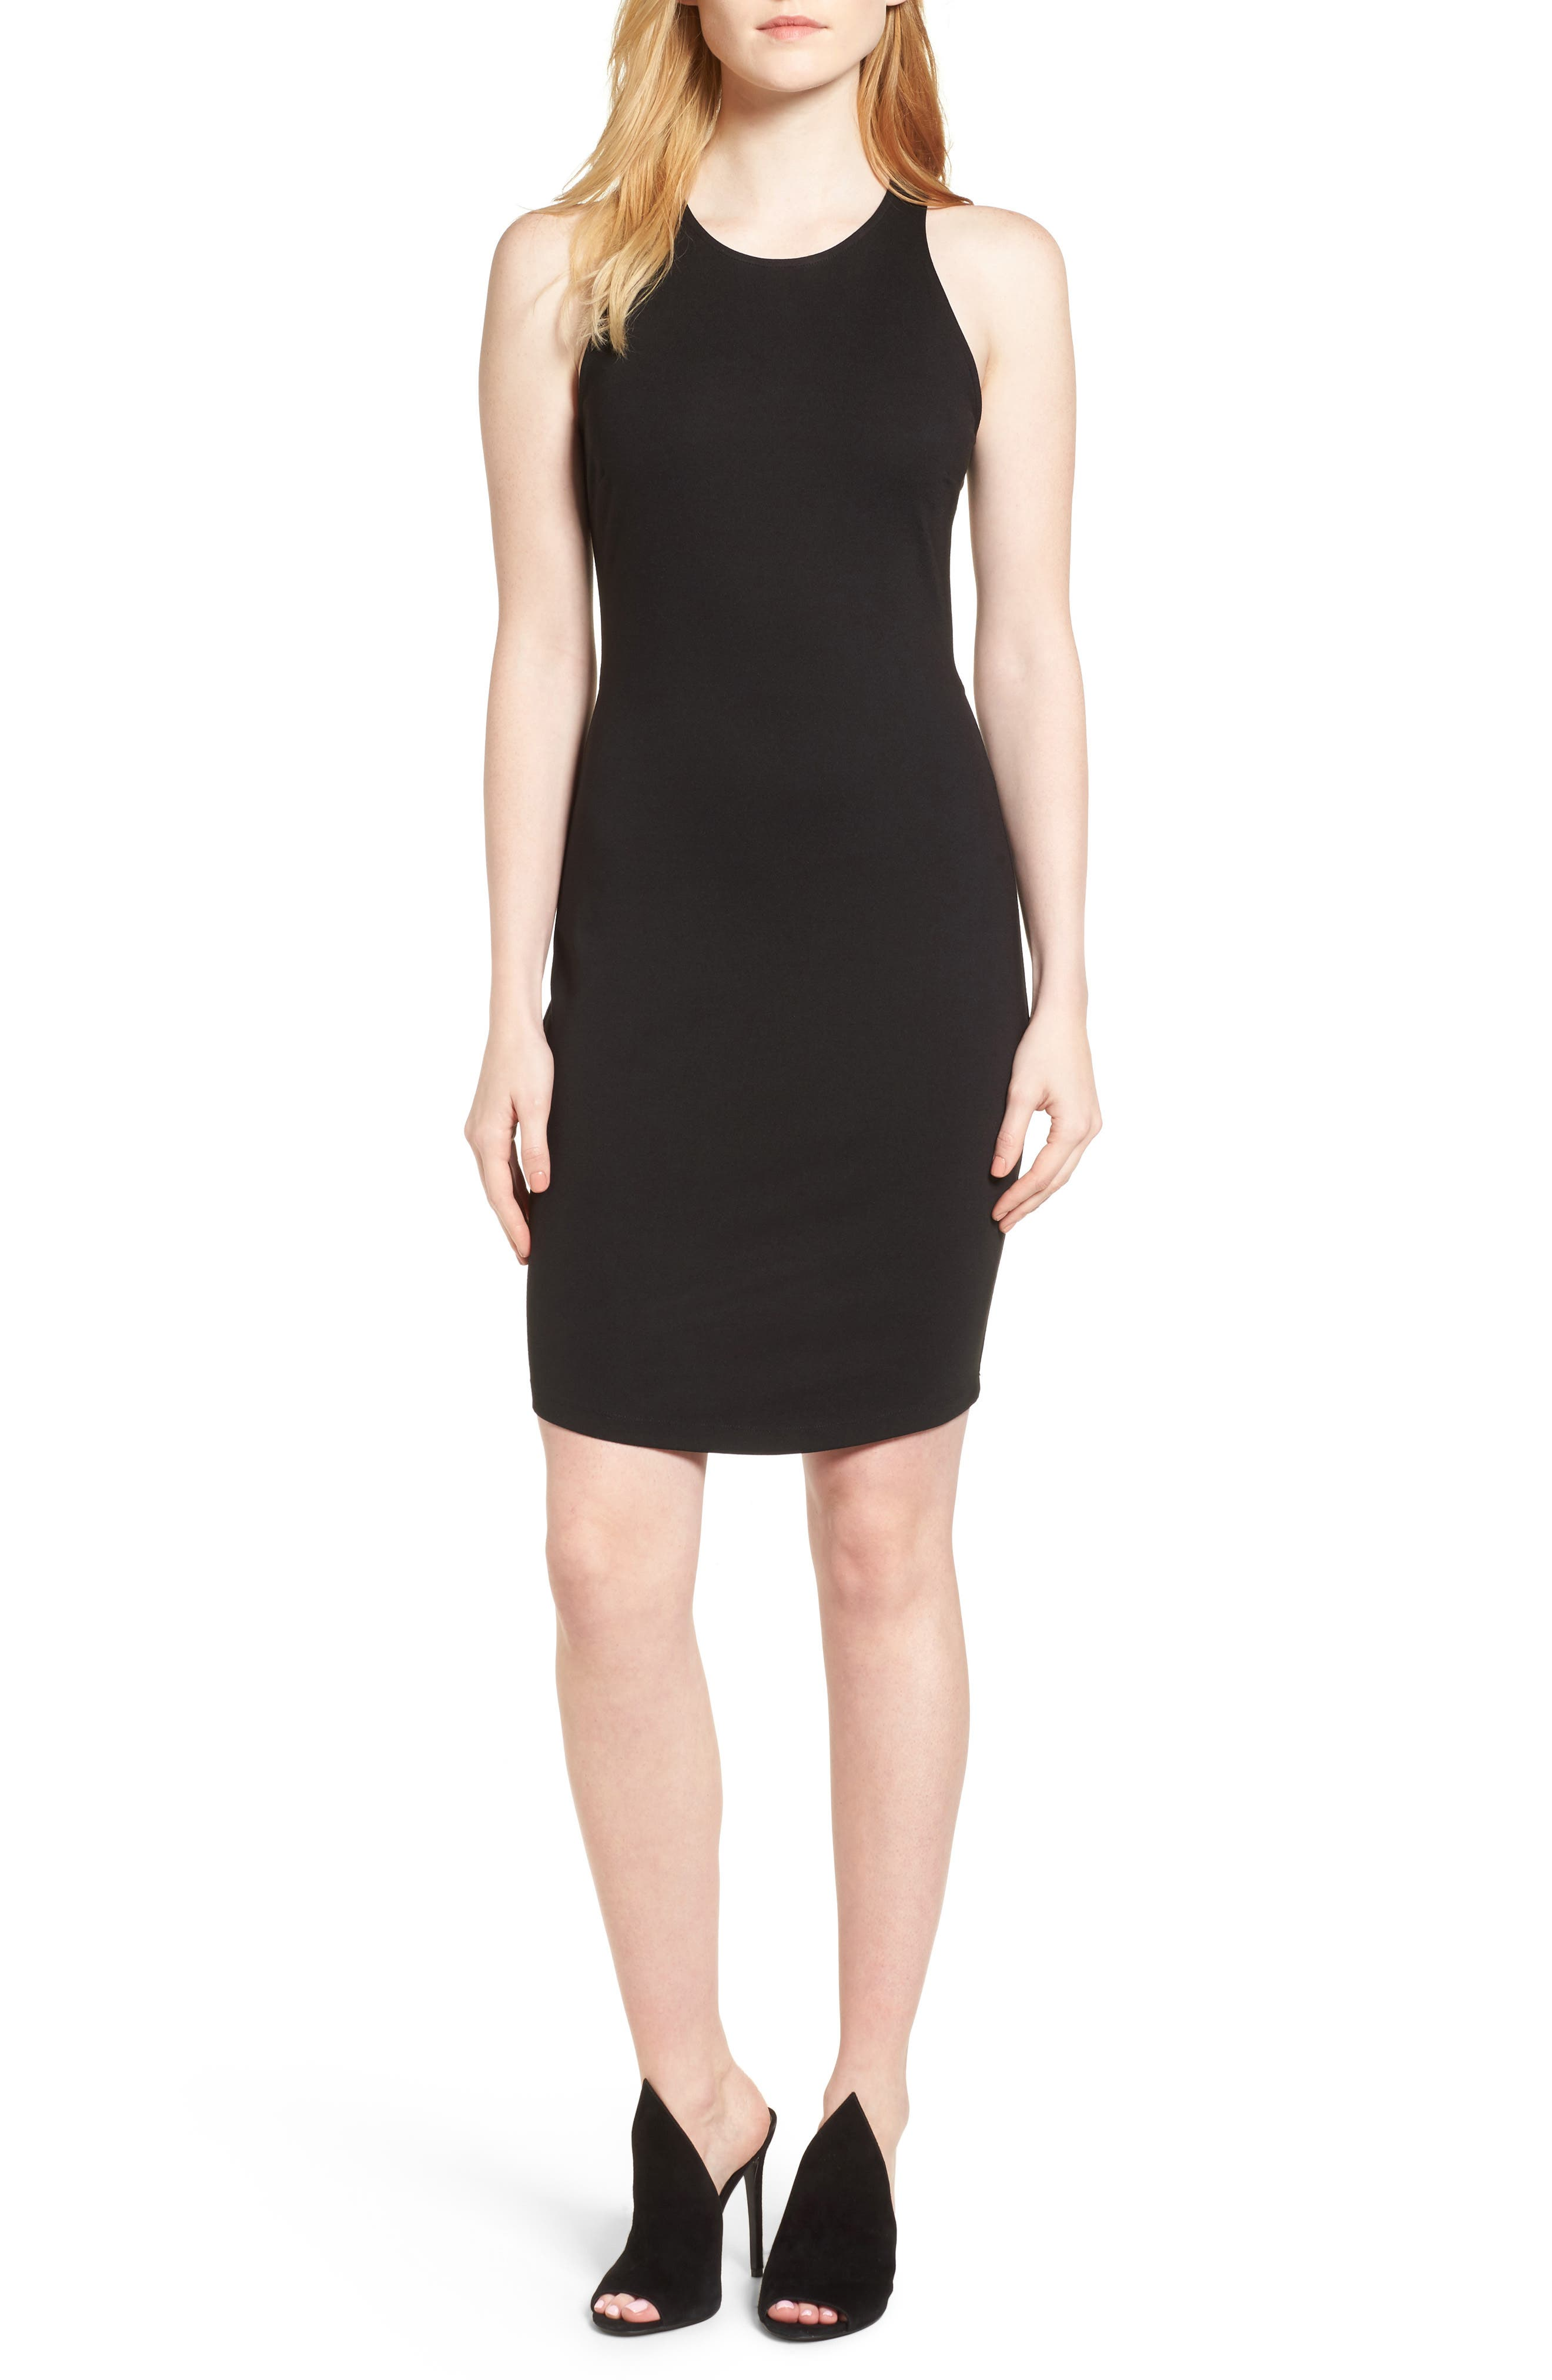 KENDALL + KYLIE Open Back Body-Con Dress